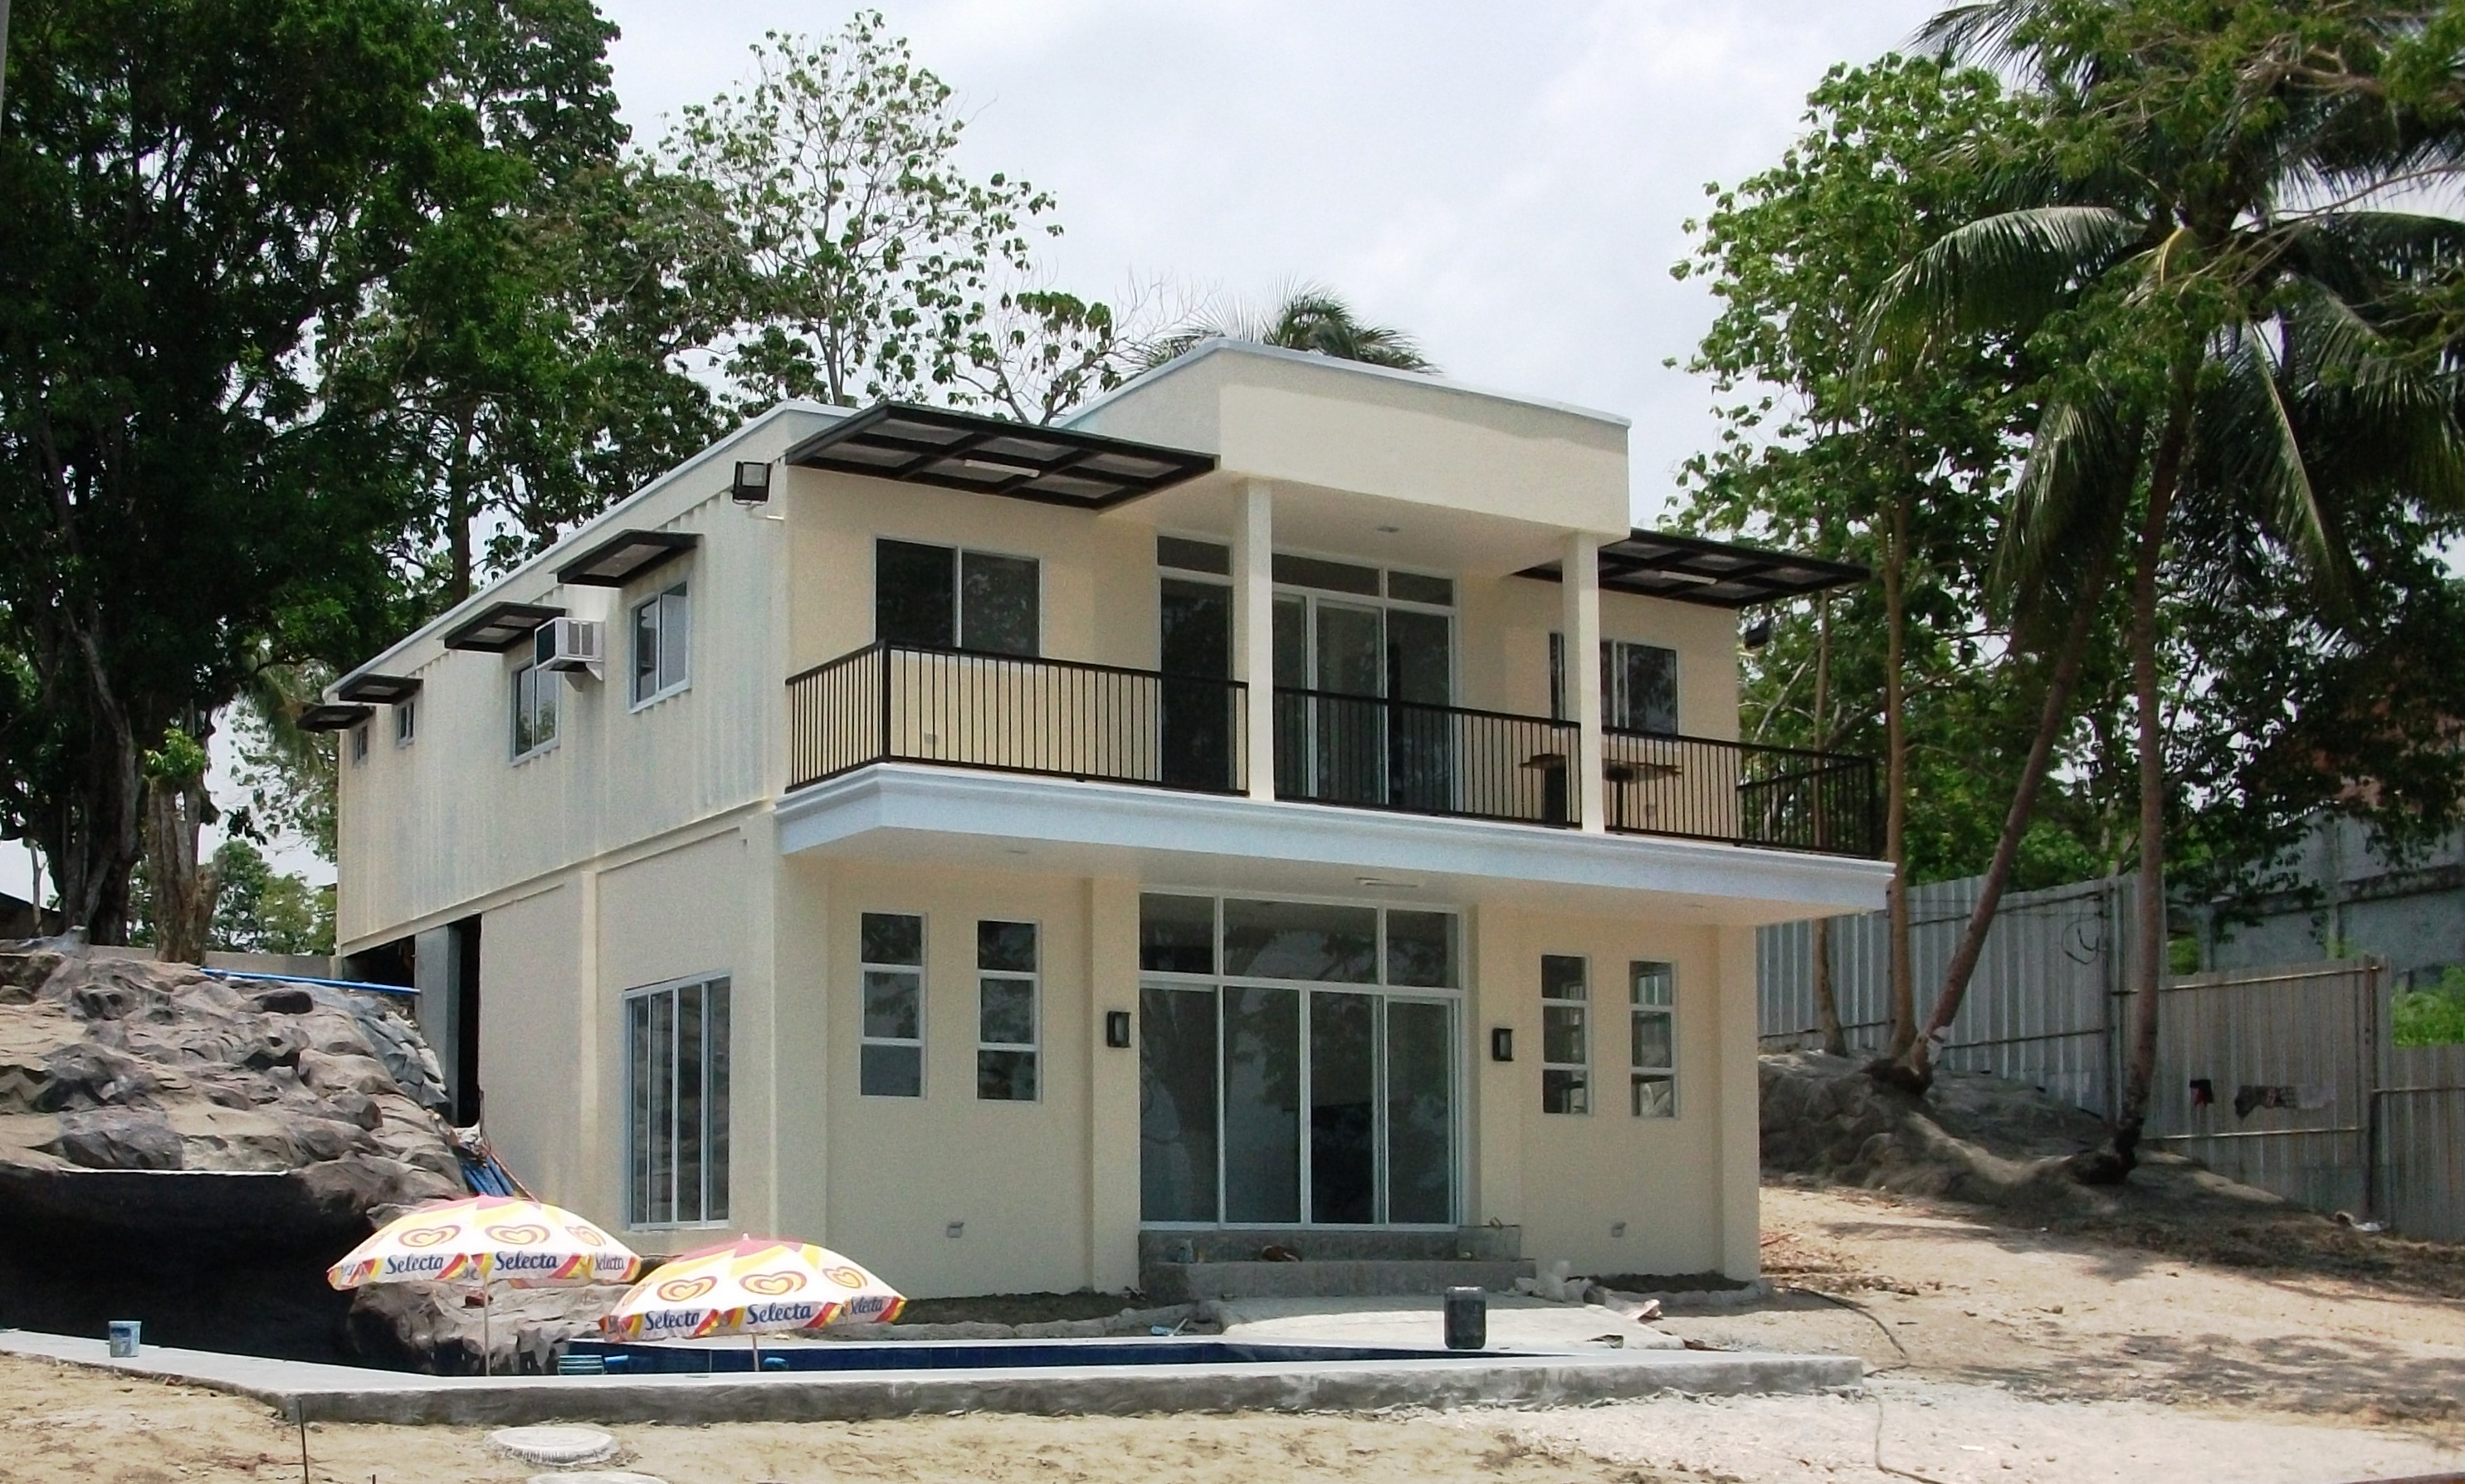 House design and price - Samal S